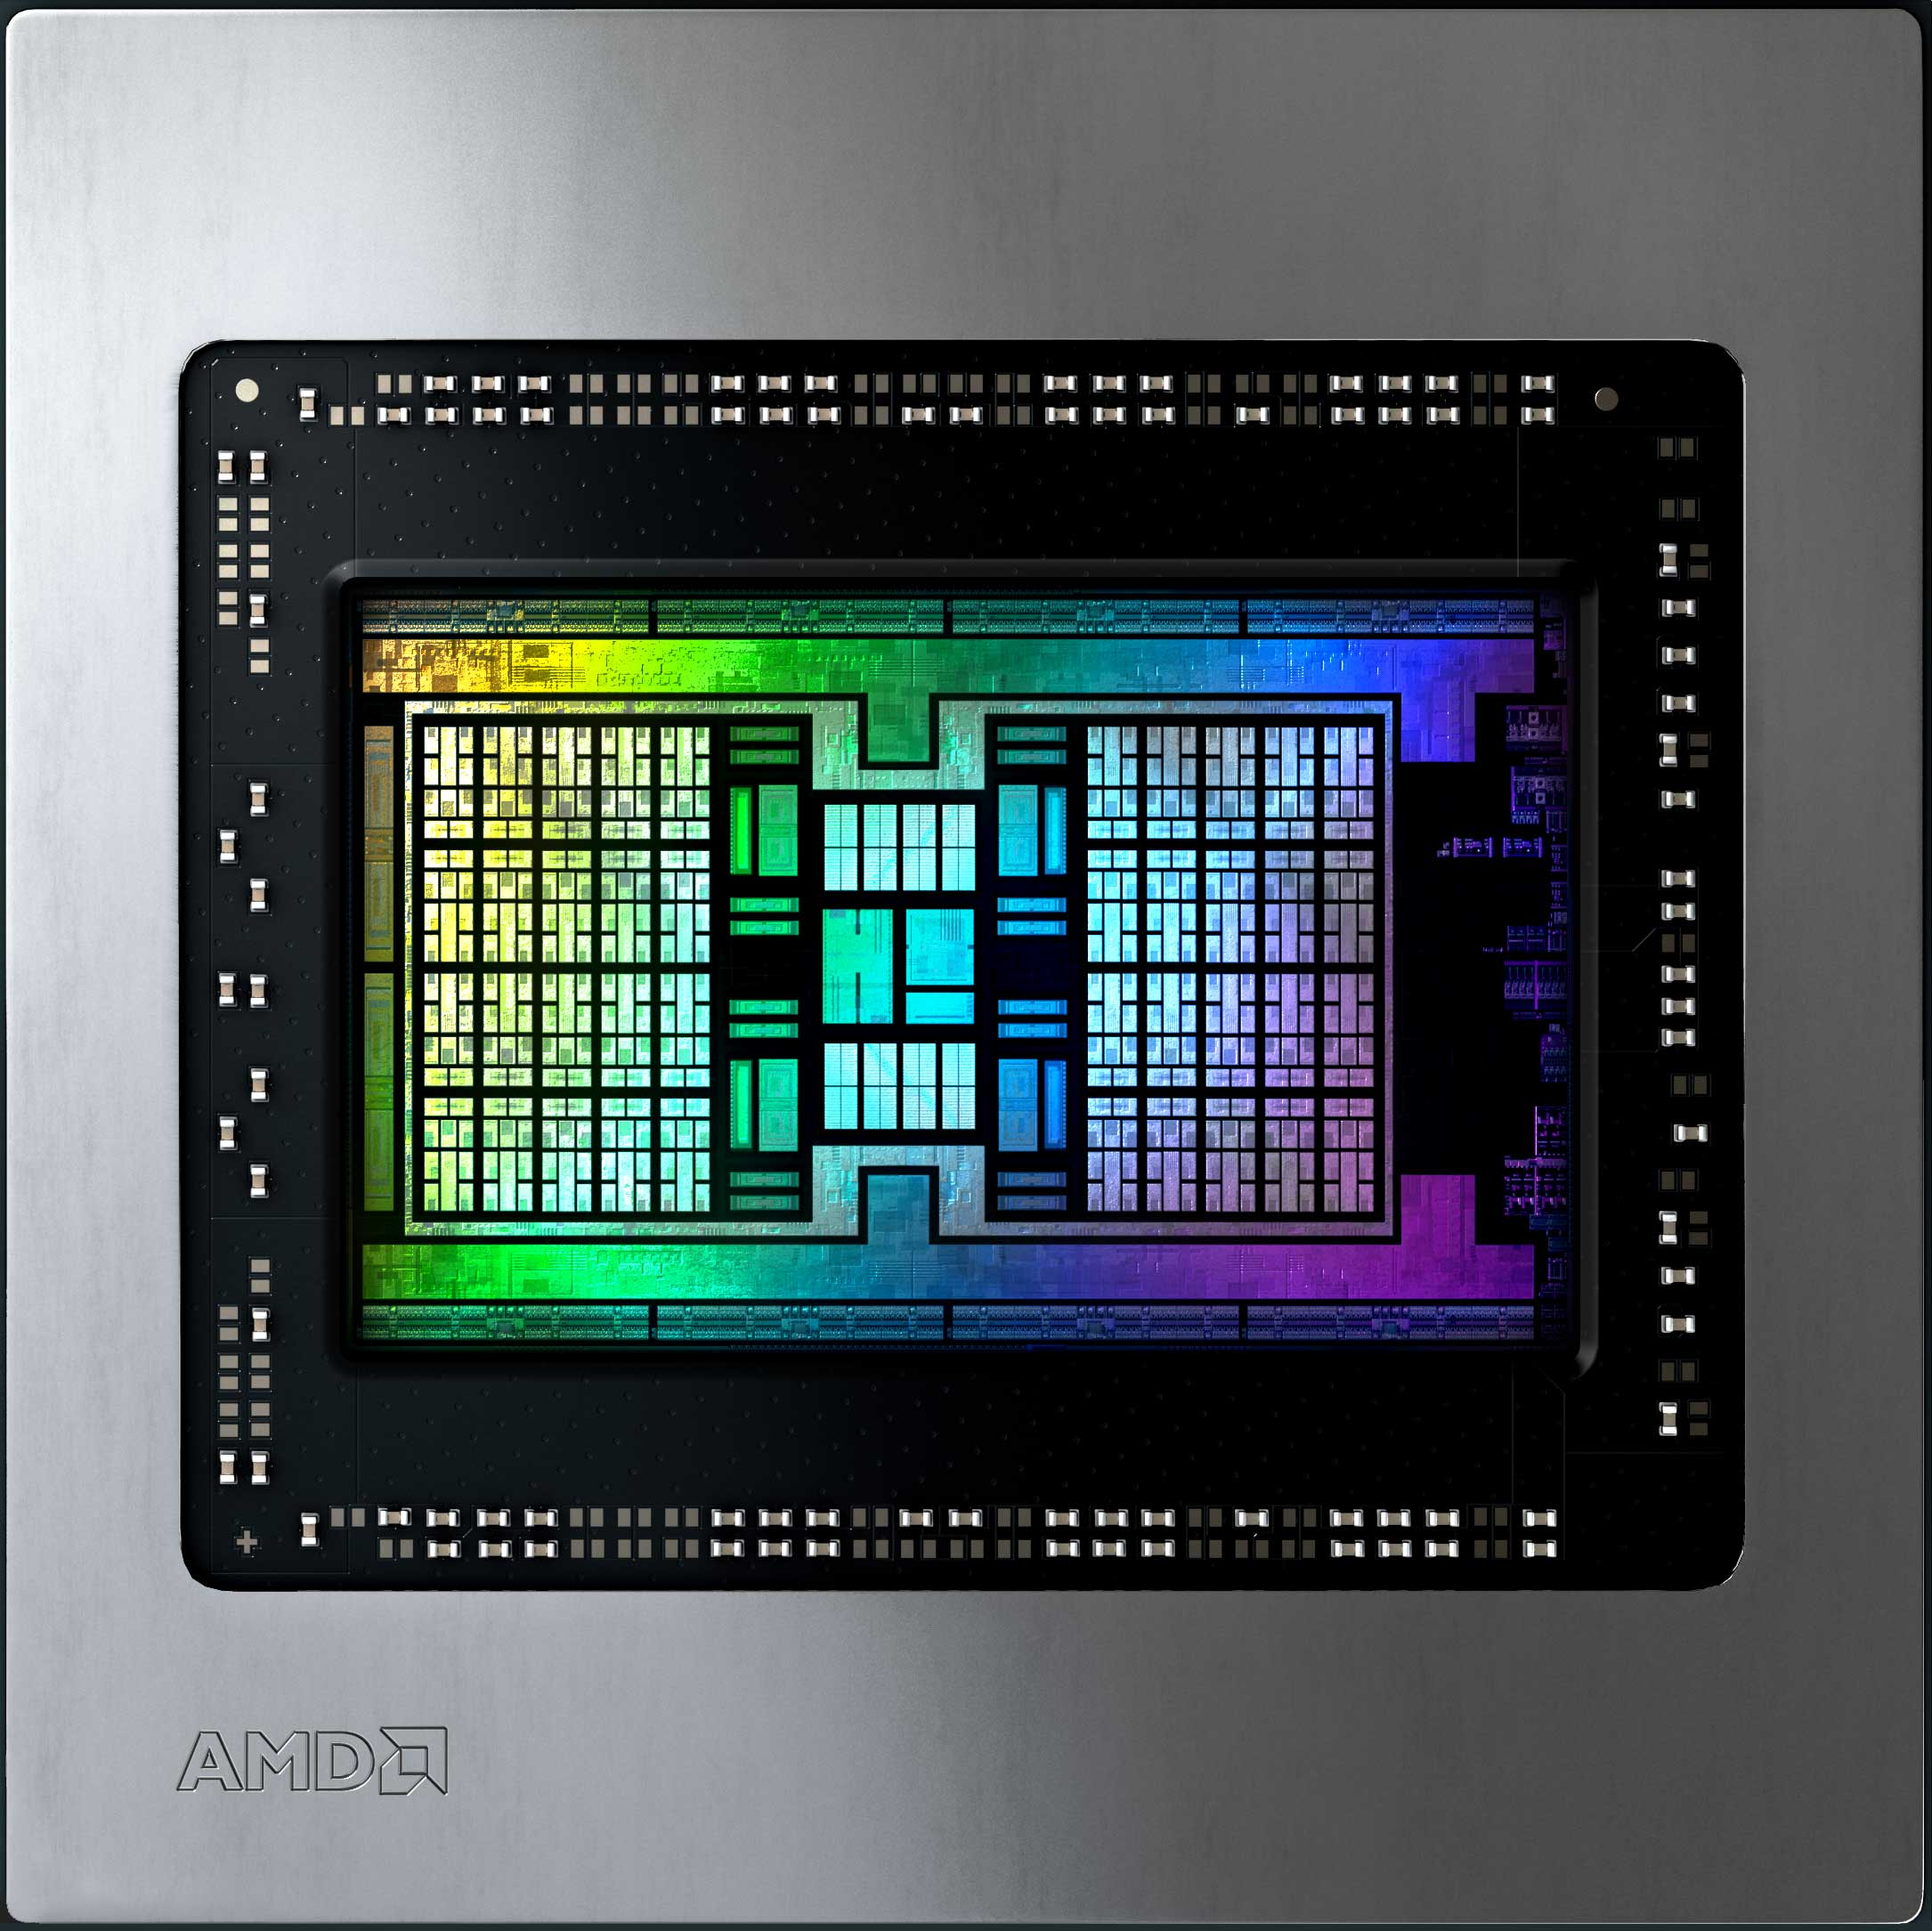 AMD Die Shot body